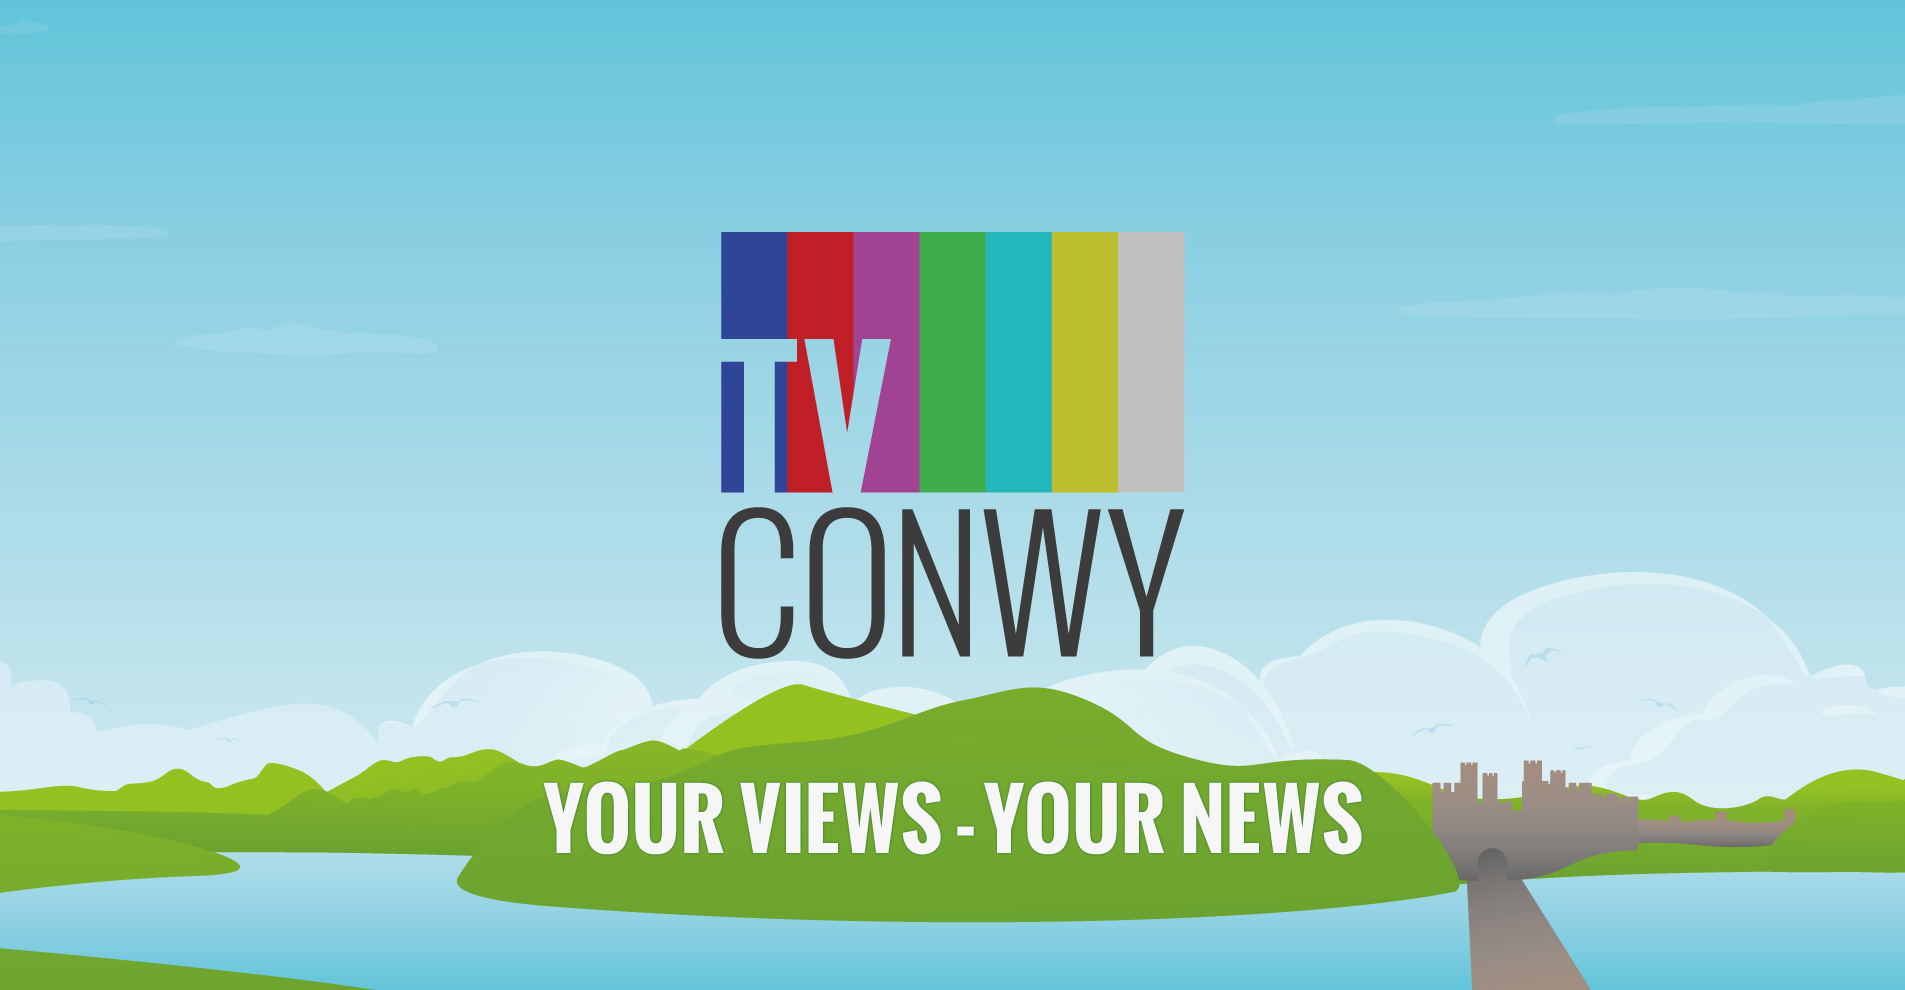 TVCONWY 01b